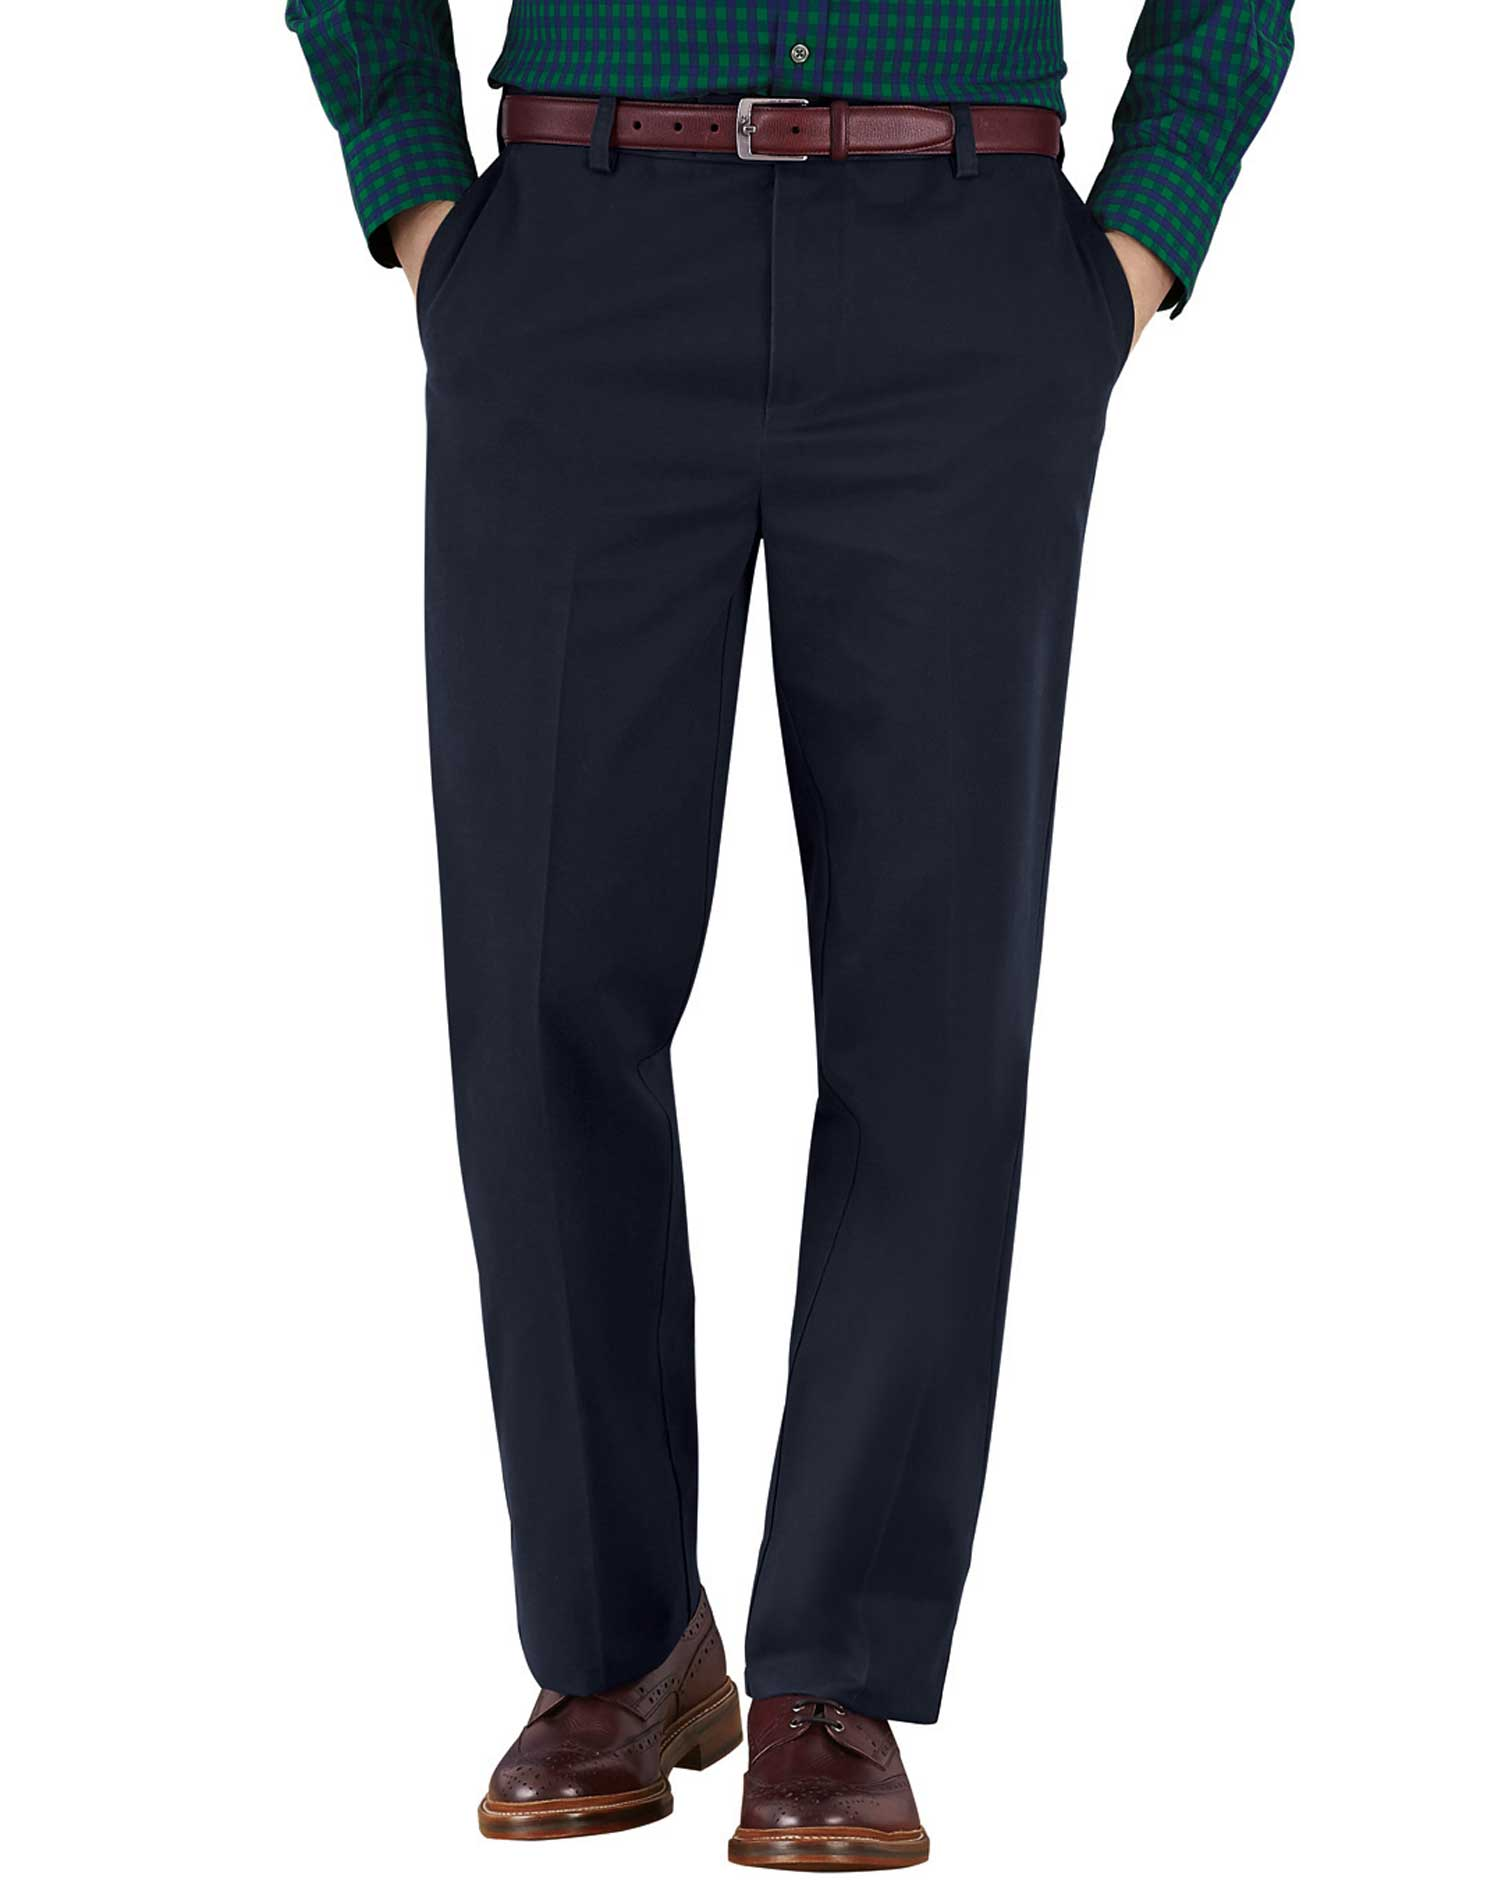 Navy Classic Fit Flat Front Non-Iron Cotton Chino Trousers Size W38 L38 by Charles Tyrwhitt